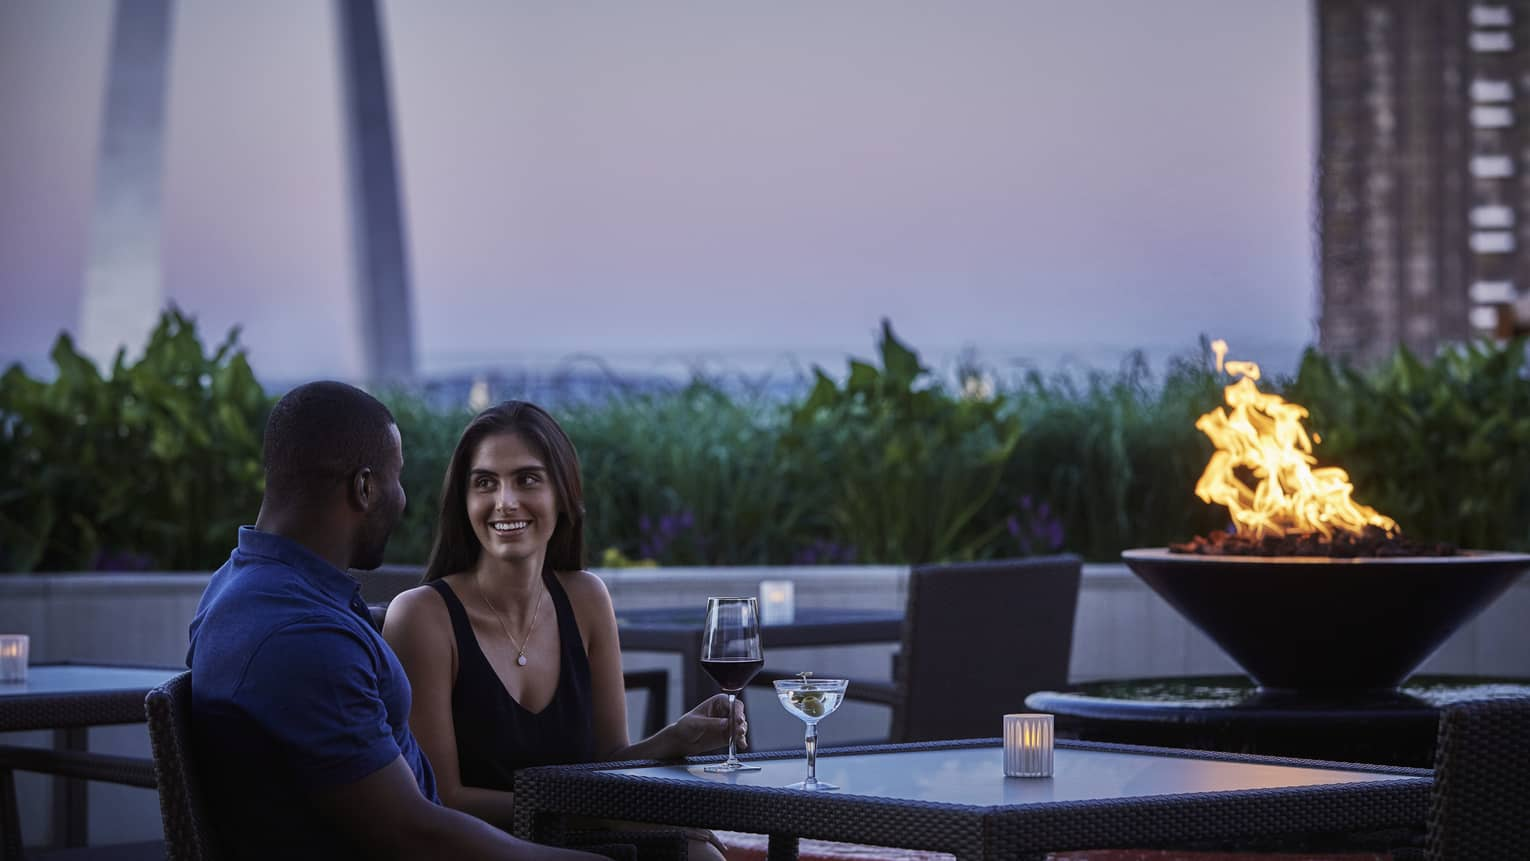 Smiling man and woman with wine glass and martini beside outdoor fireplace at dusk